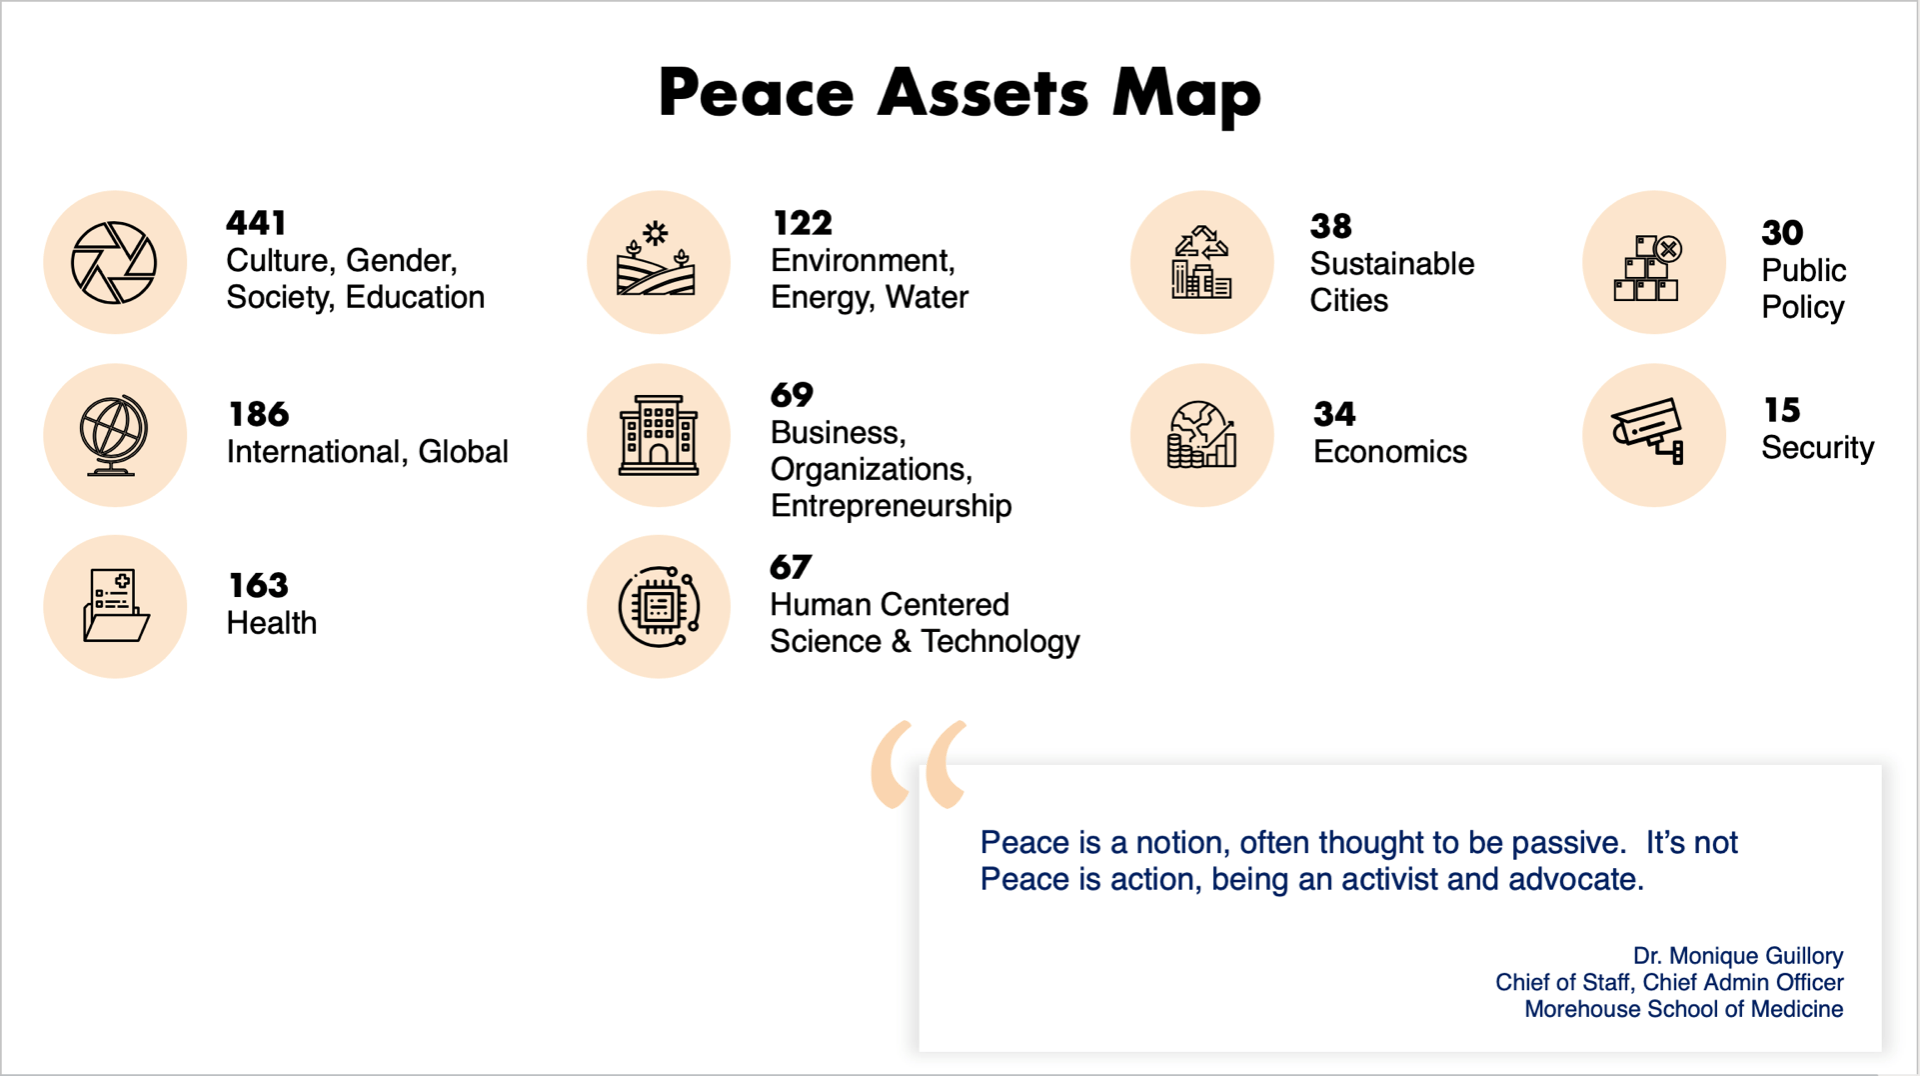 Overview of findings of peace asset mapping endeavor